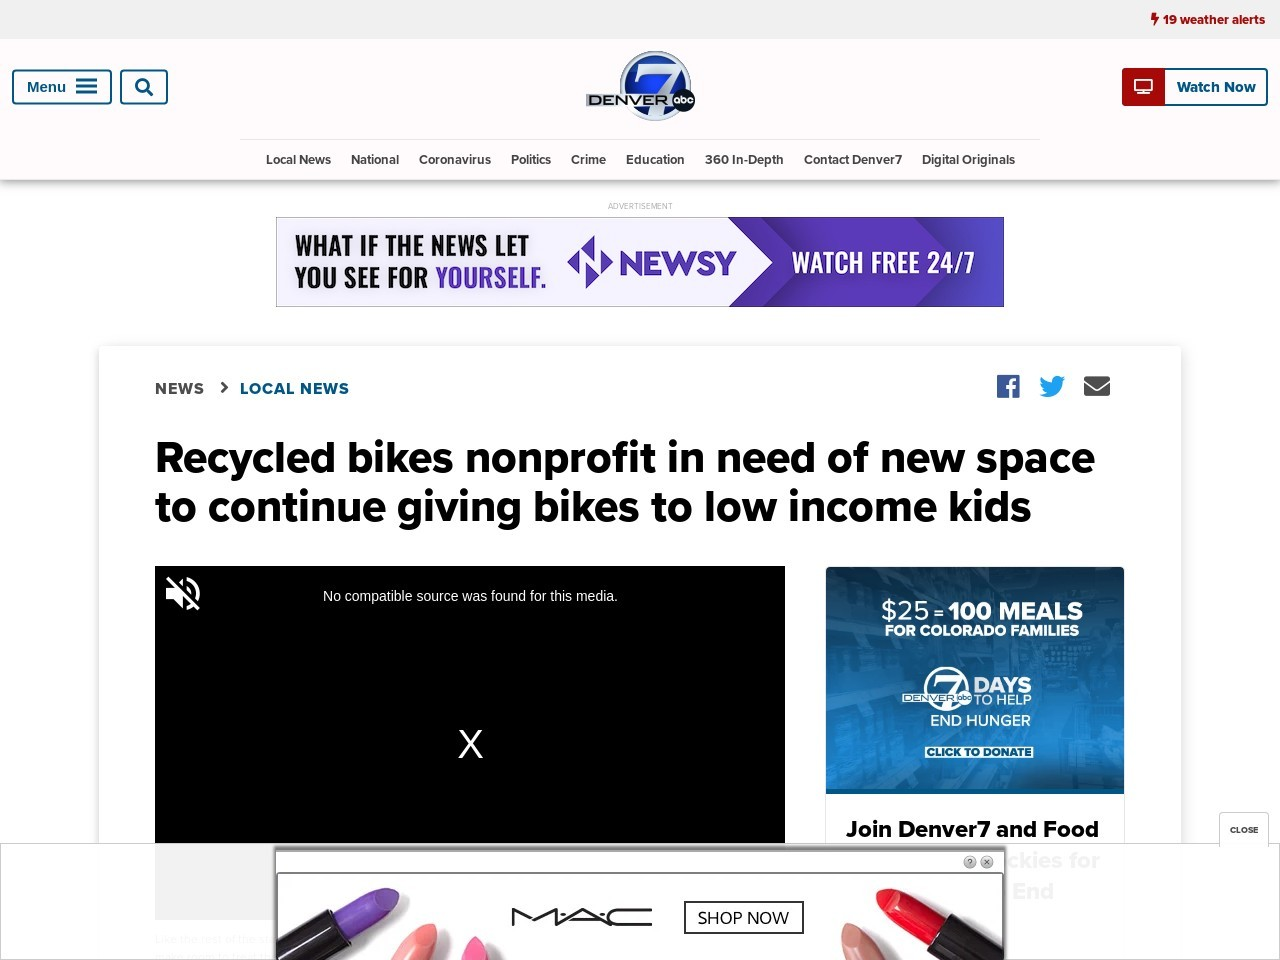 Recycled bikes nonprofit in need of new space